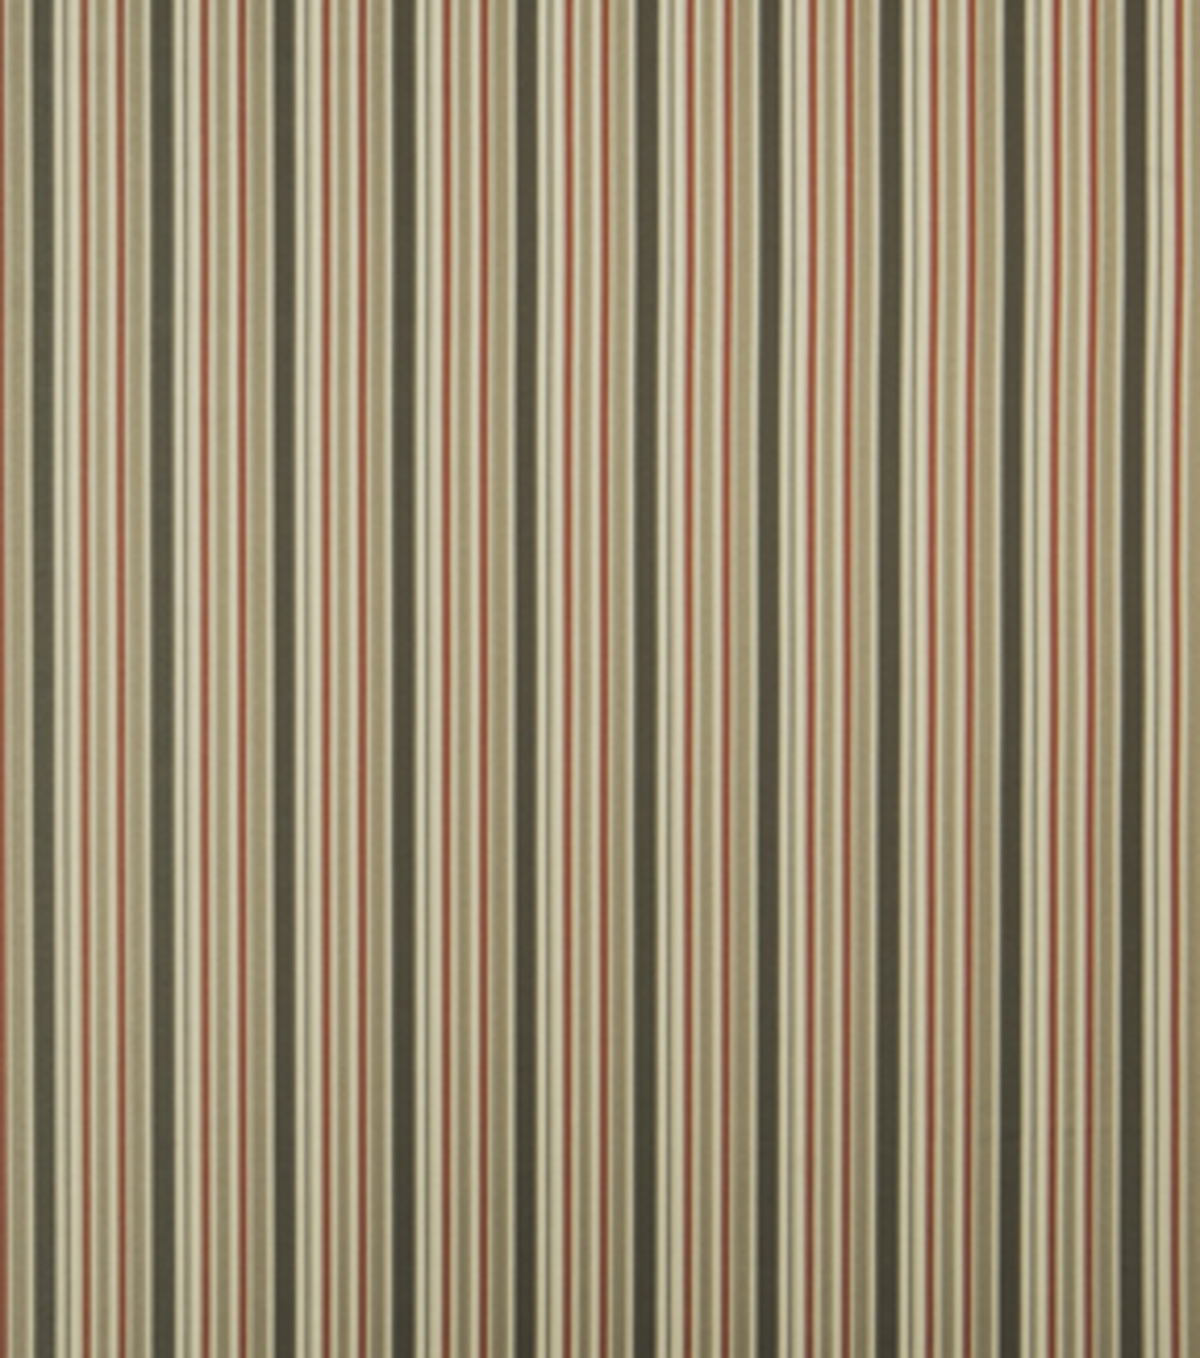 Home Decor 8\u0022x8\u0022 Fabric Swatch-Eaton Square Meadowlark Spice